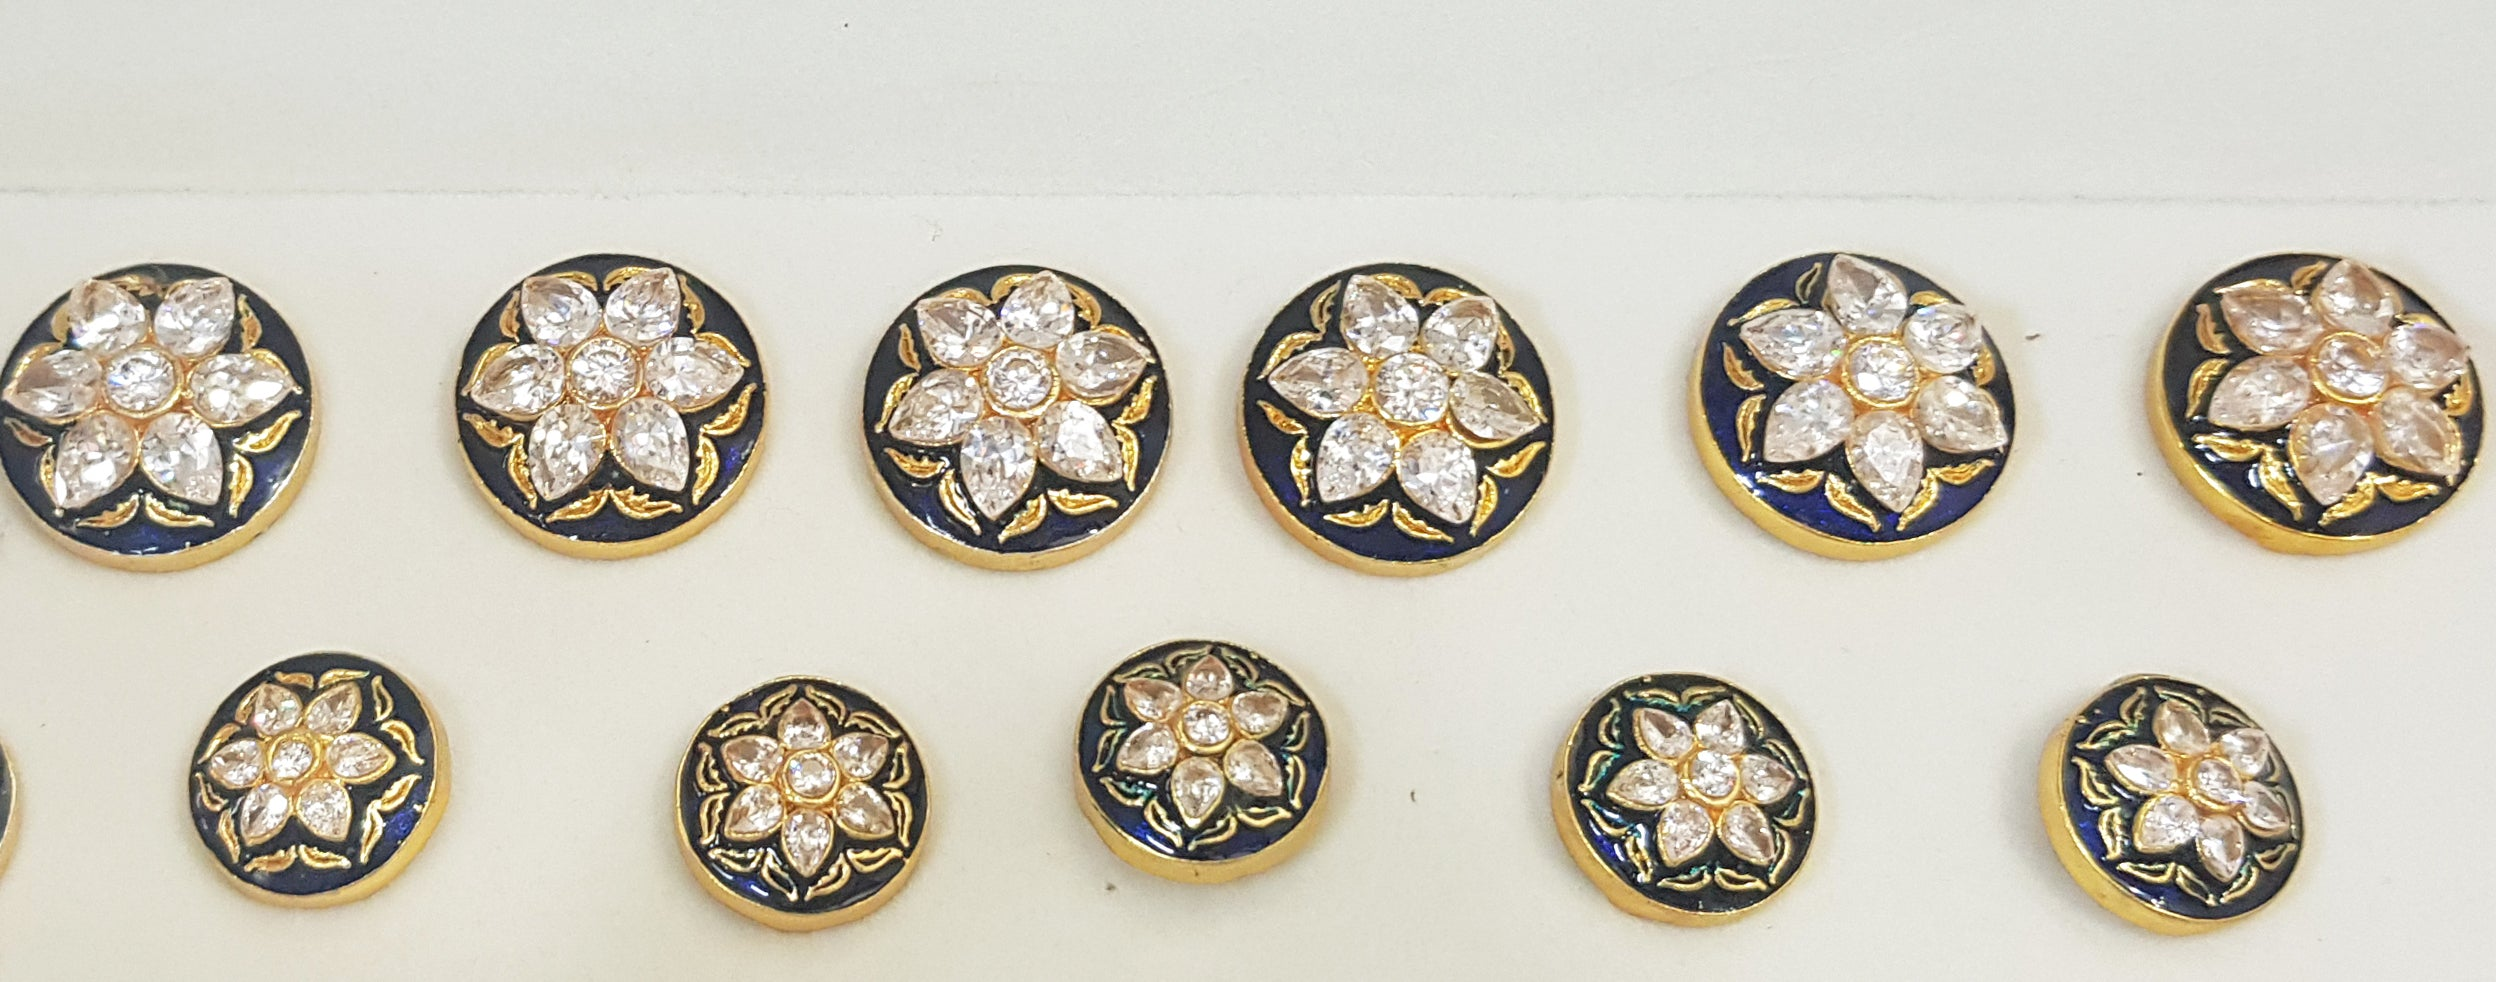 White Stone Flower Buttons with Blue Enamel